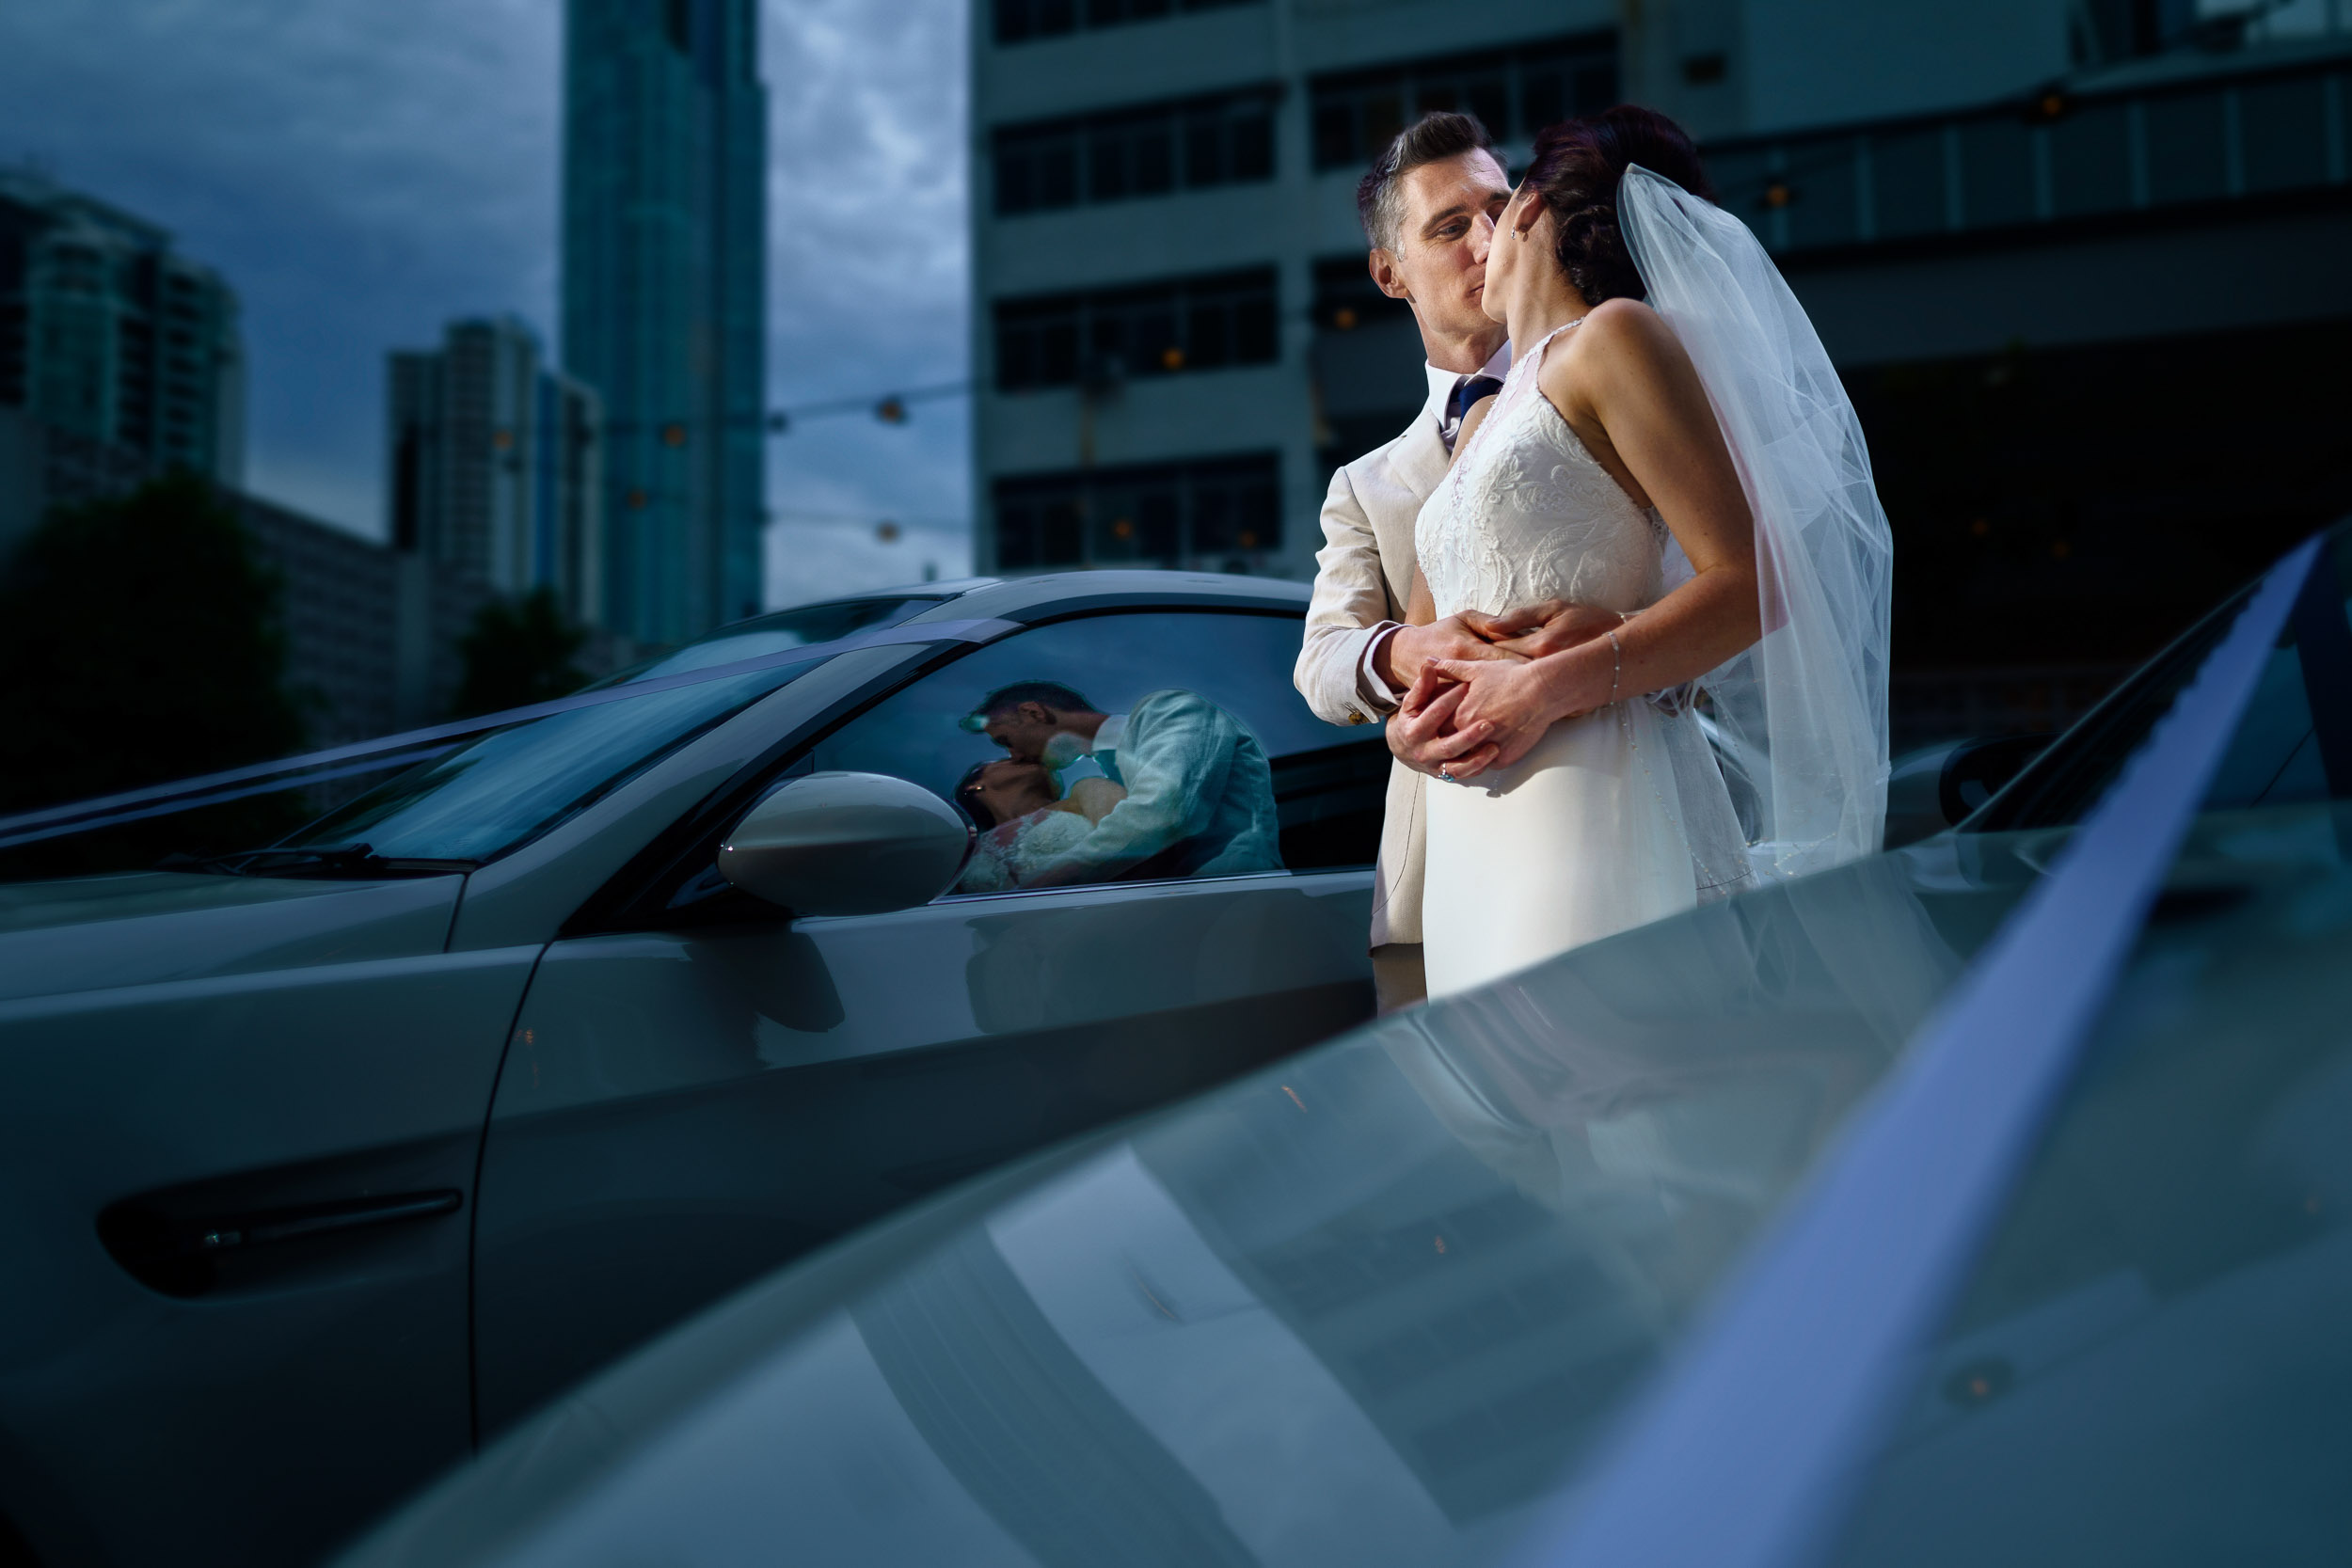 Wedding day portrait of bride and groom with BMW cars.